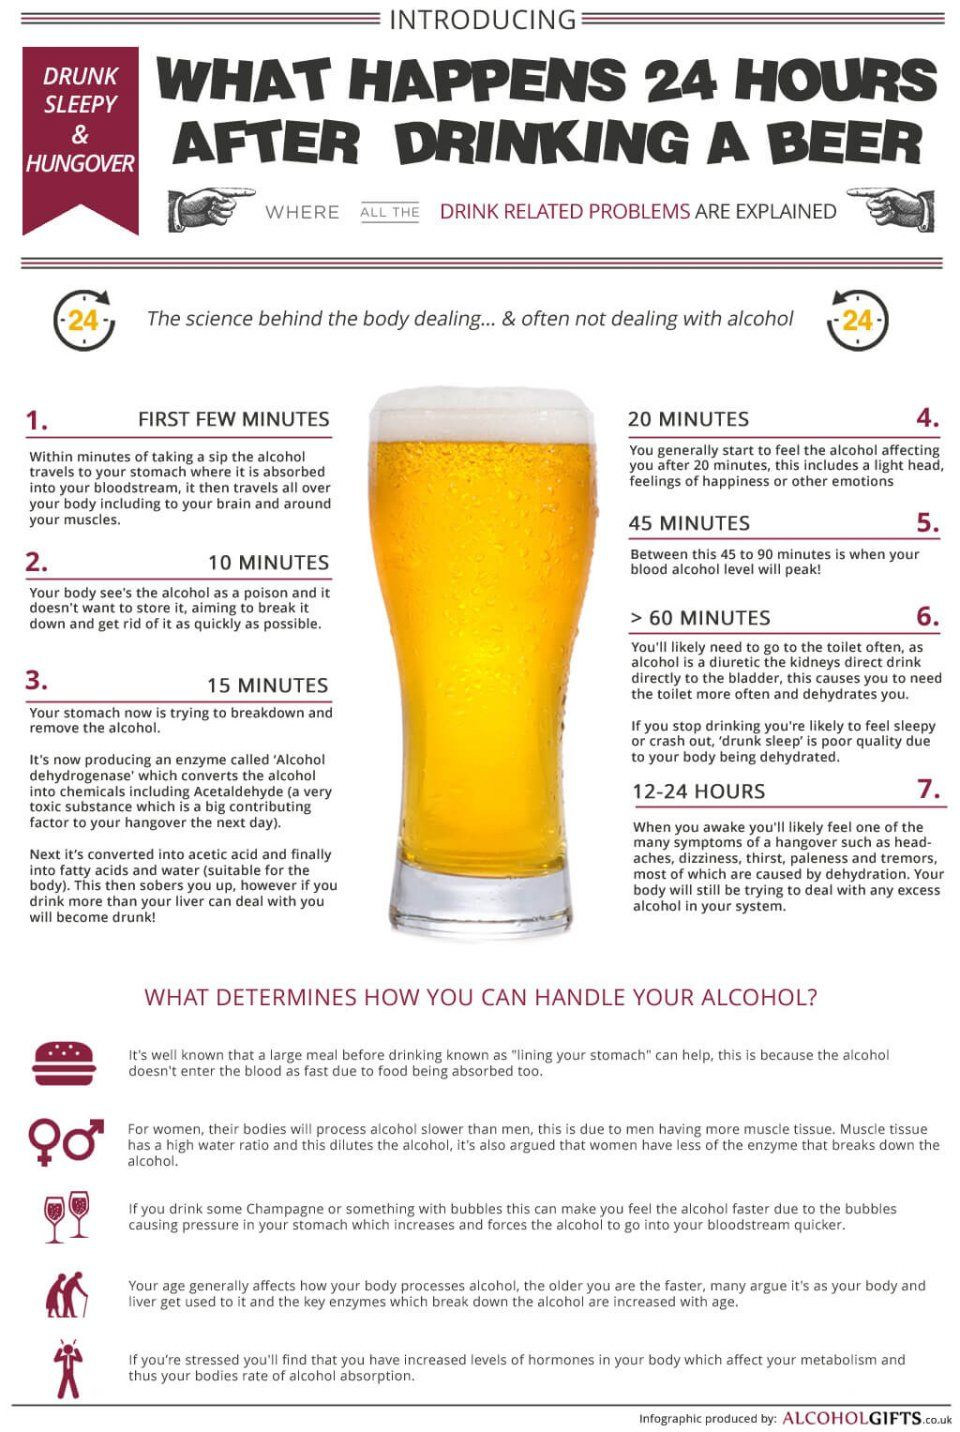 Effects Of Beer On The Body Through 24 Hours